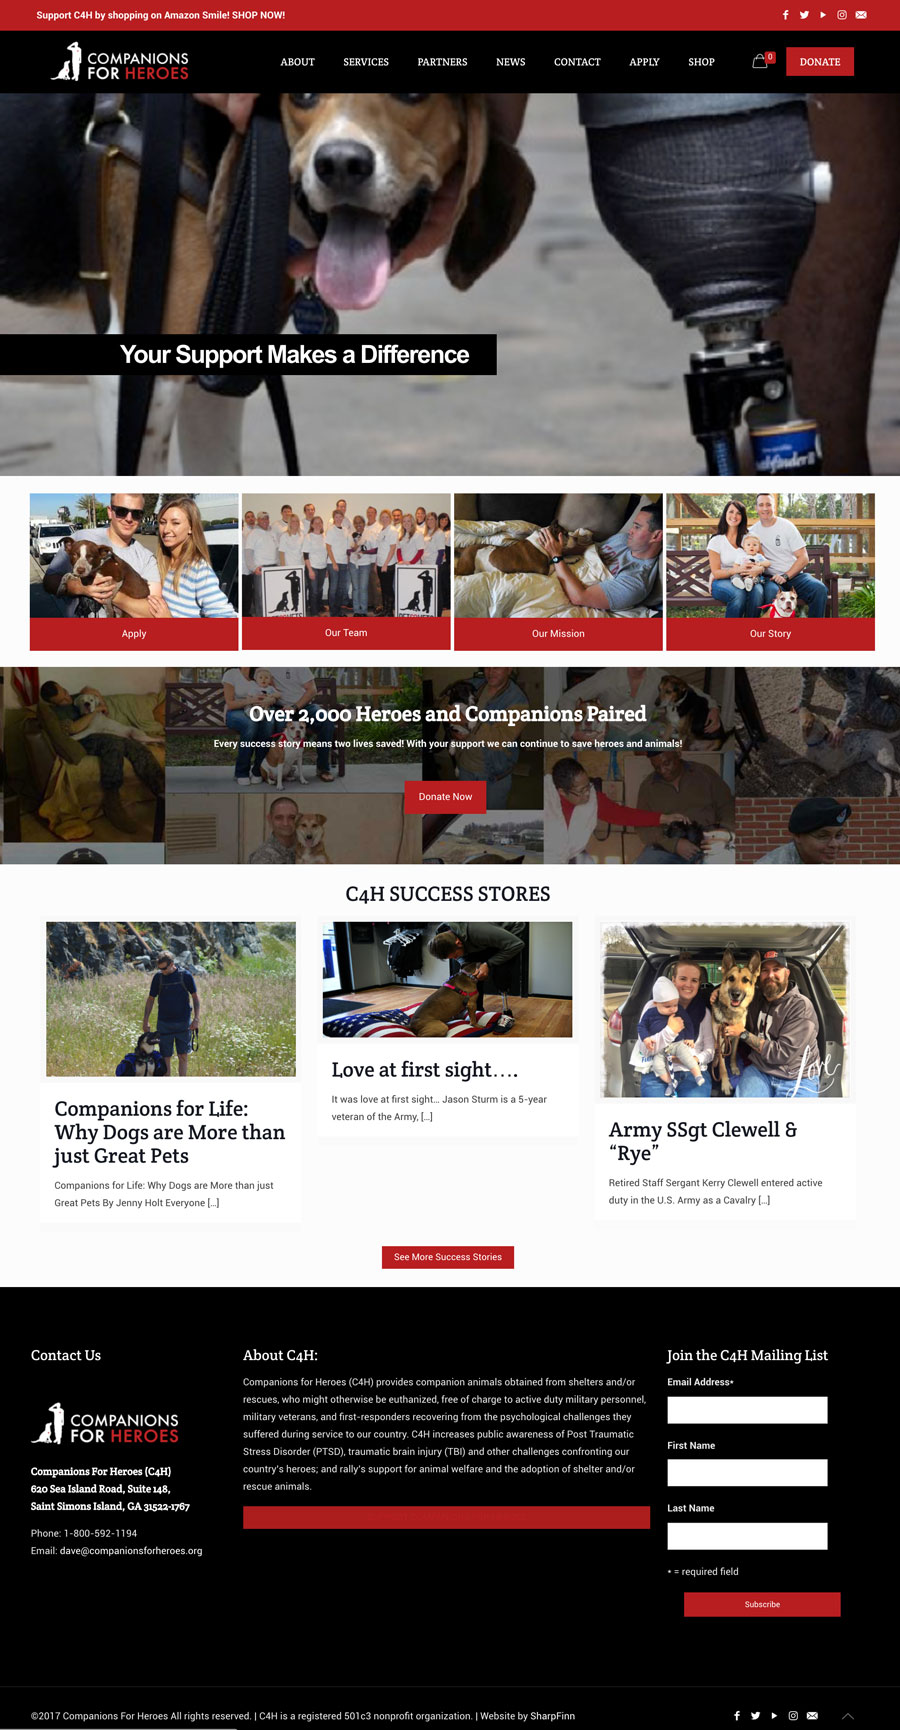 Website Designed for Companions For Heroes, a non profit organization that pair Veterans with rescue animals.